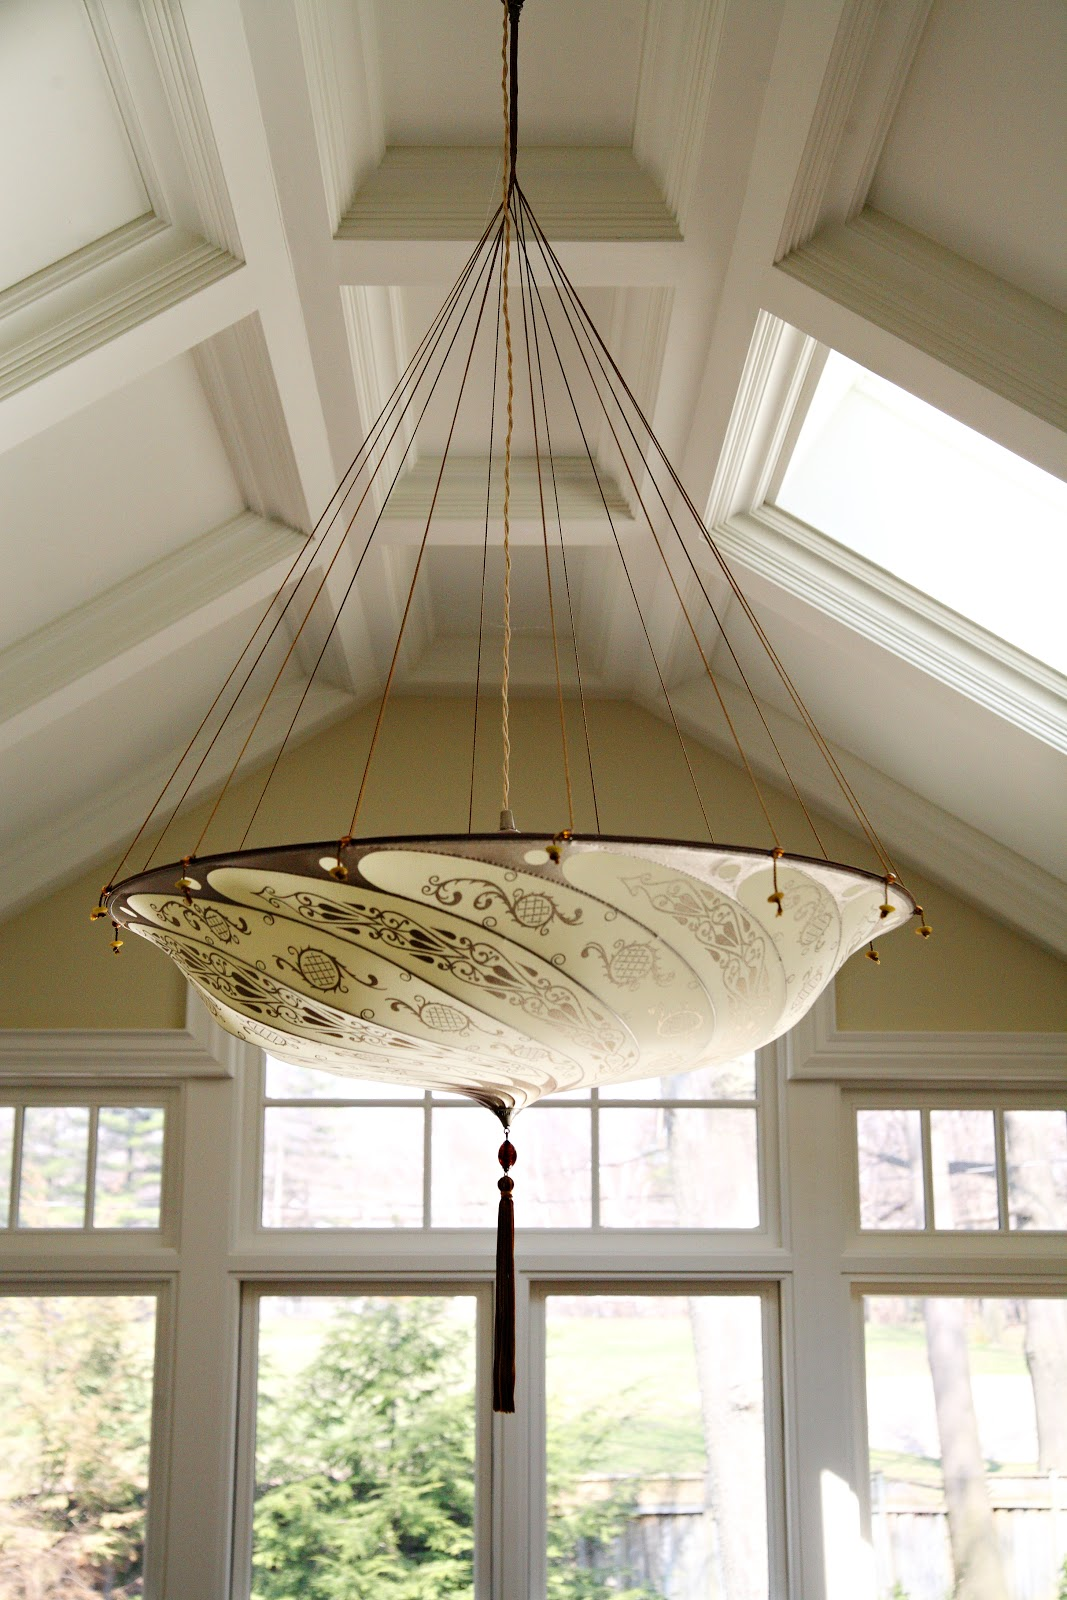 ring fortuny studium from cesendello b with chandelier en by venetia product general lighting large